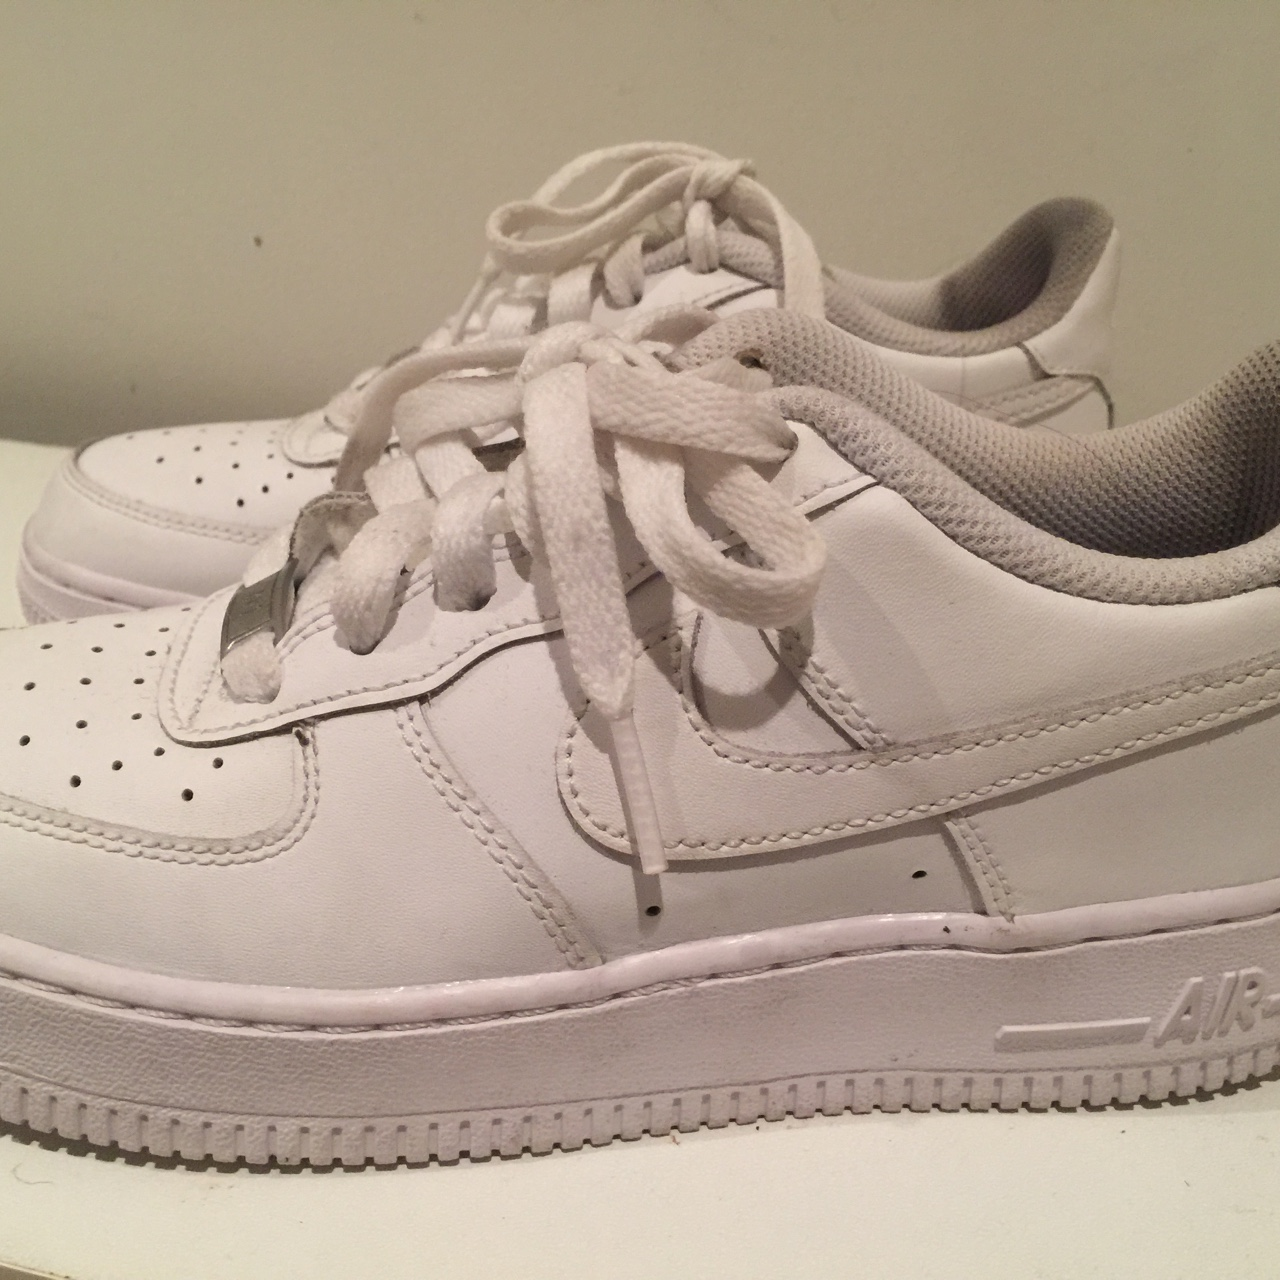 Nike Air Force 1 Low Size 6.5 womens